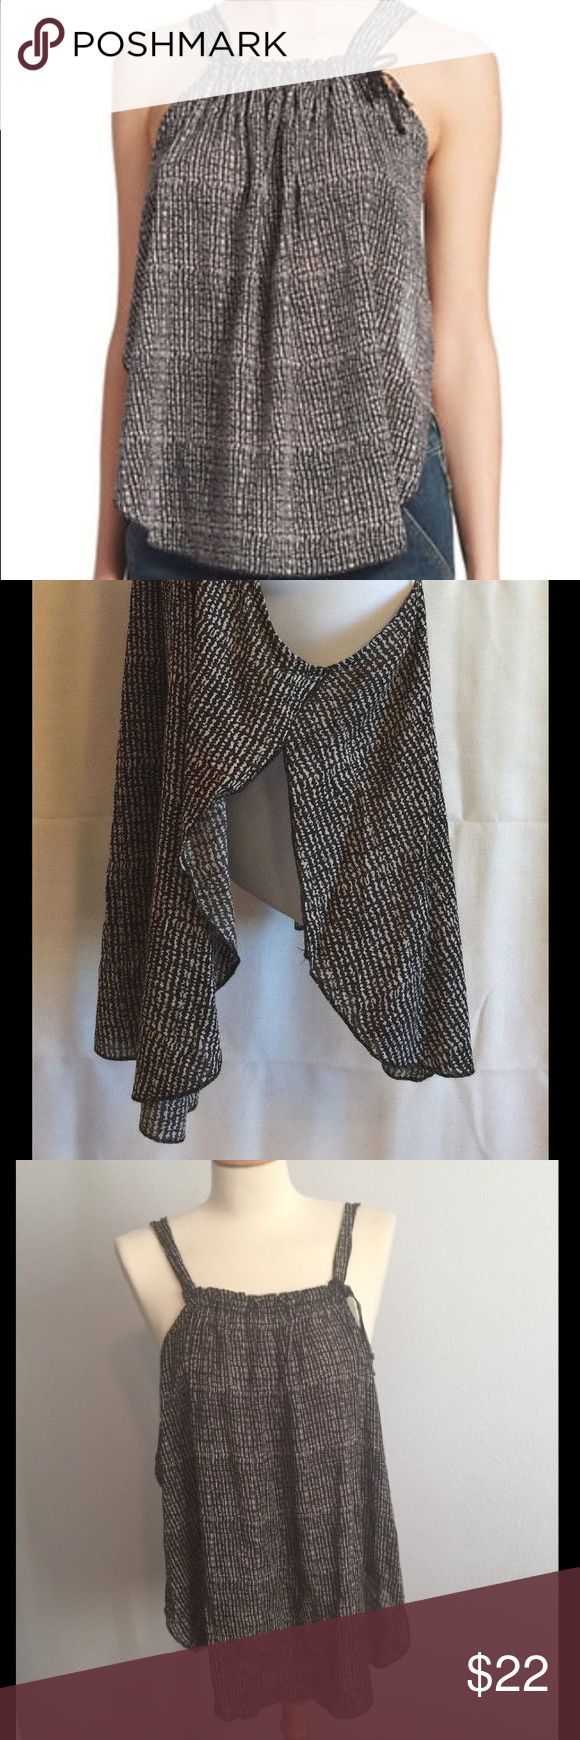 NWT 🌿 Free People Flowy Open Side Gauze Tank Gorgeous Bohemian tank by Free People! Sides fall away for an easy breezy look! Super cute, never worn, new with tags! Free People Tops Tank Tops